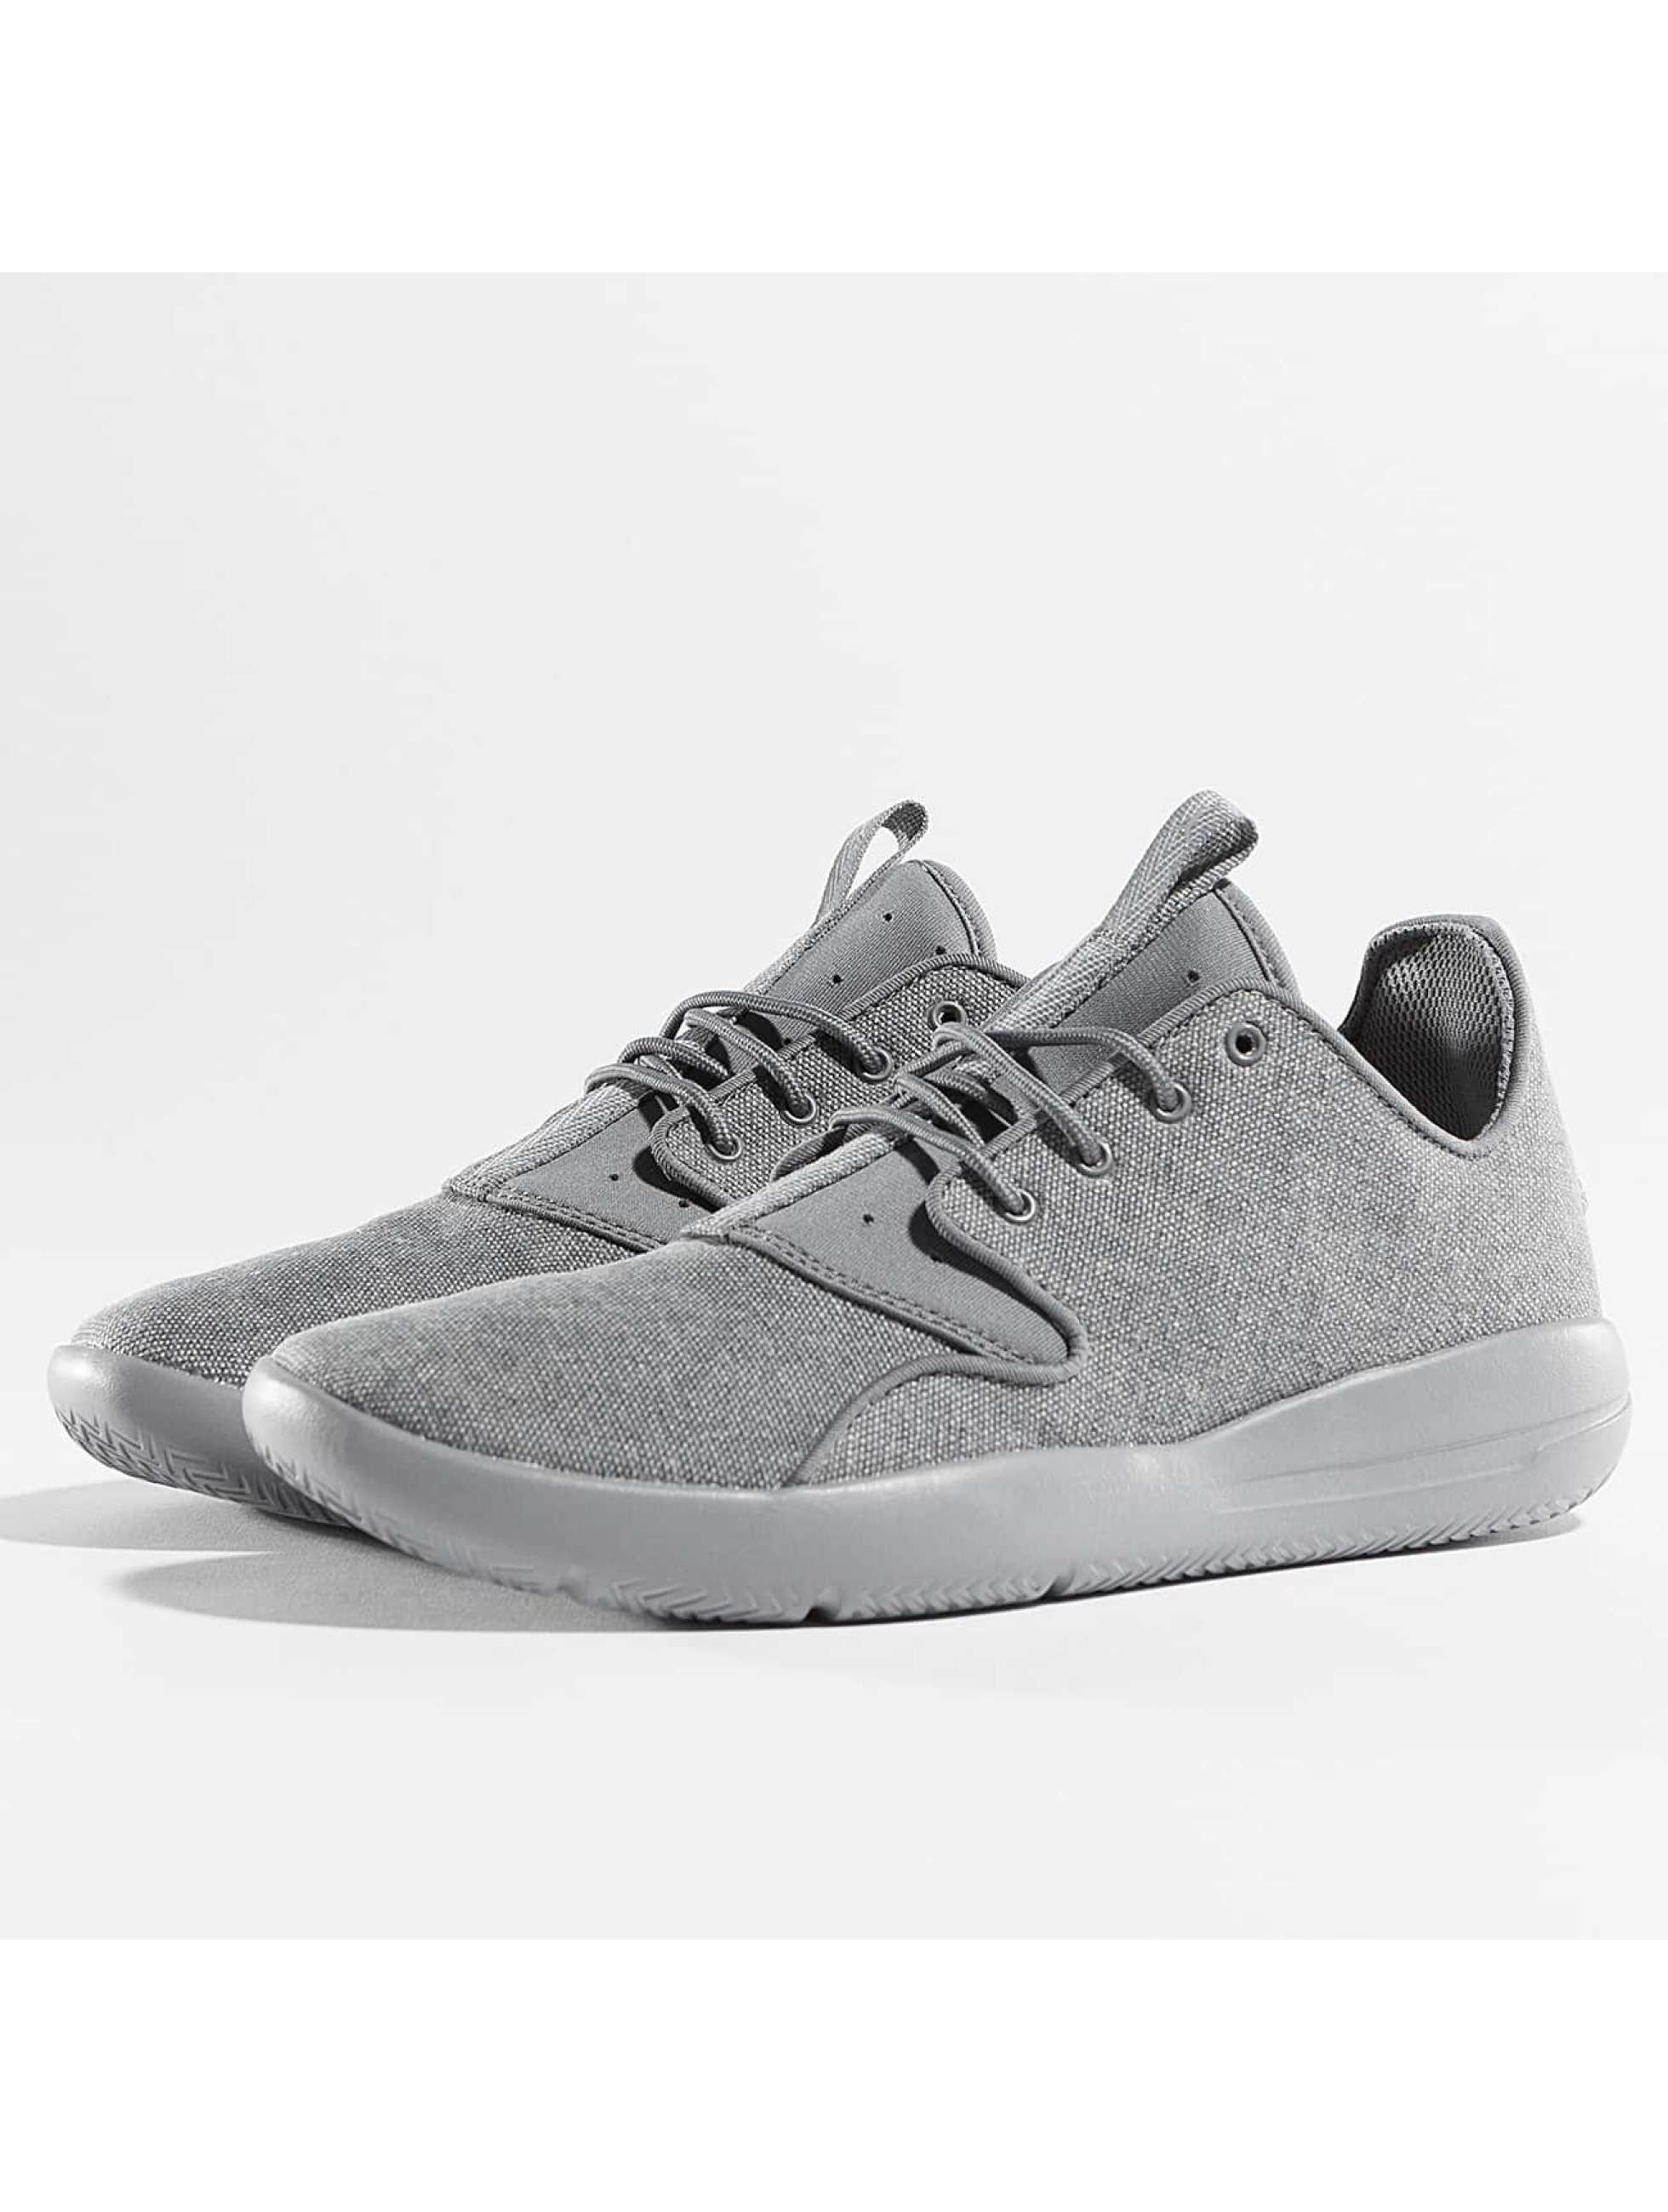 Jordan Frauen,Kinder Sneaker Eclipse BG in grau